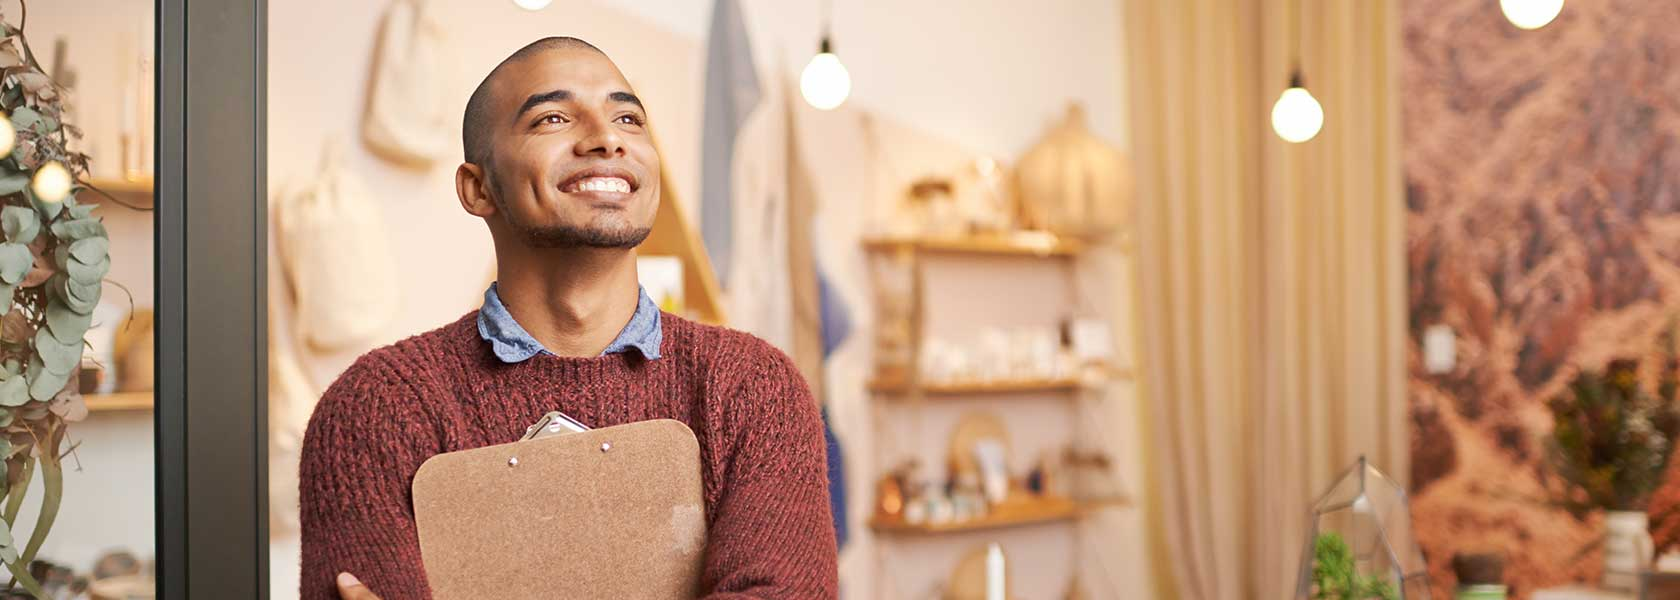 Growing Business | How to Succeed With Your Growing Business